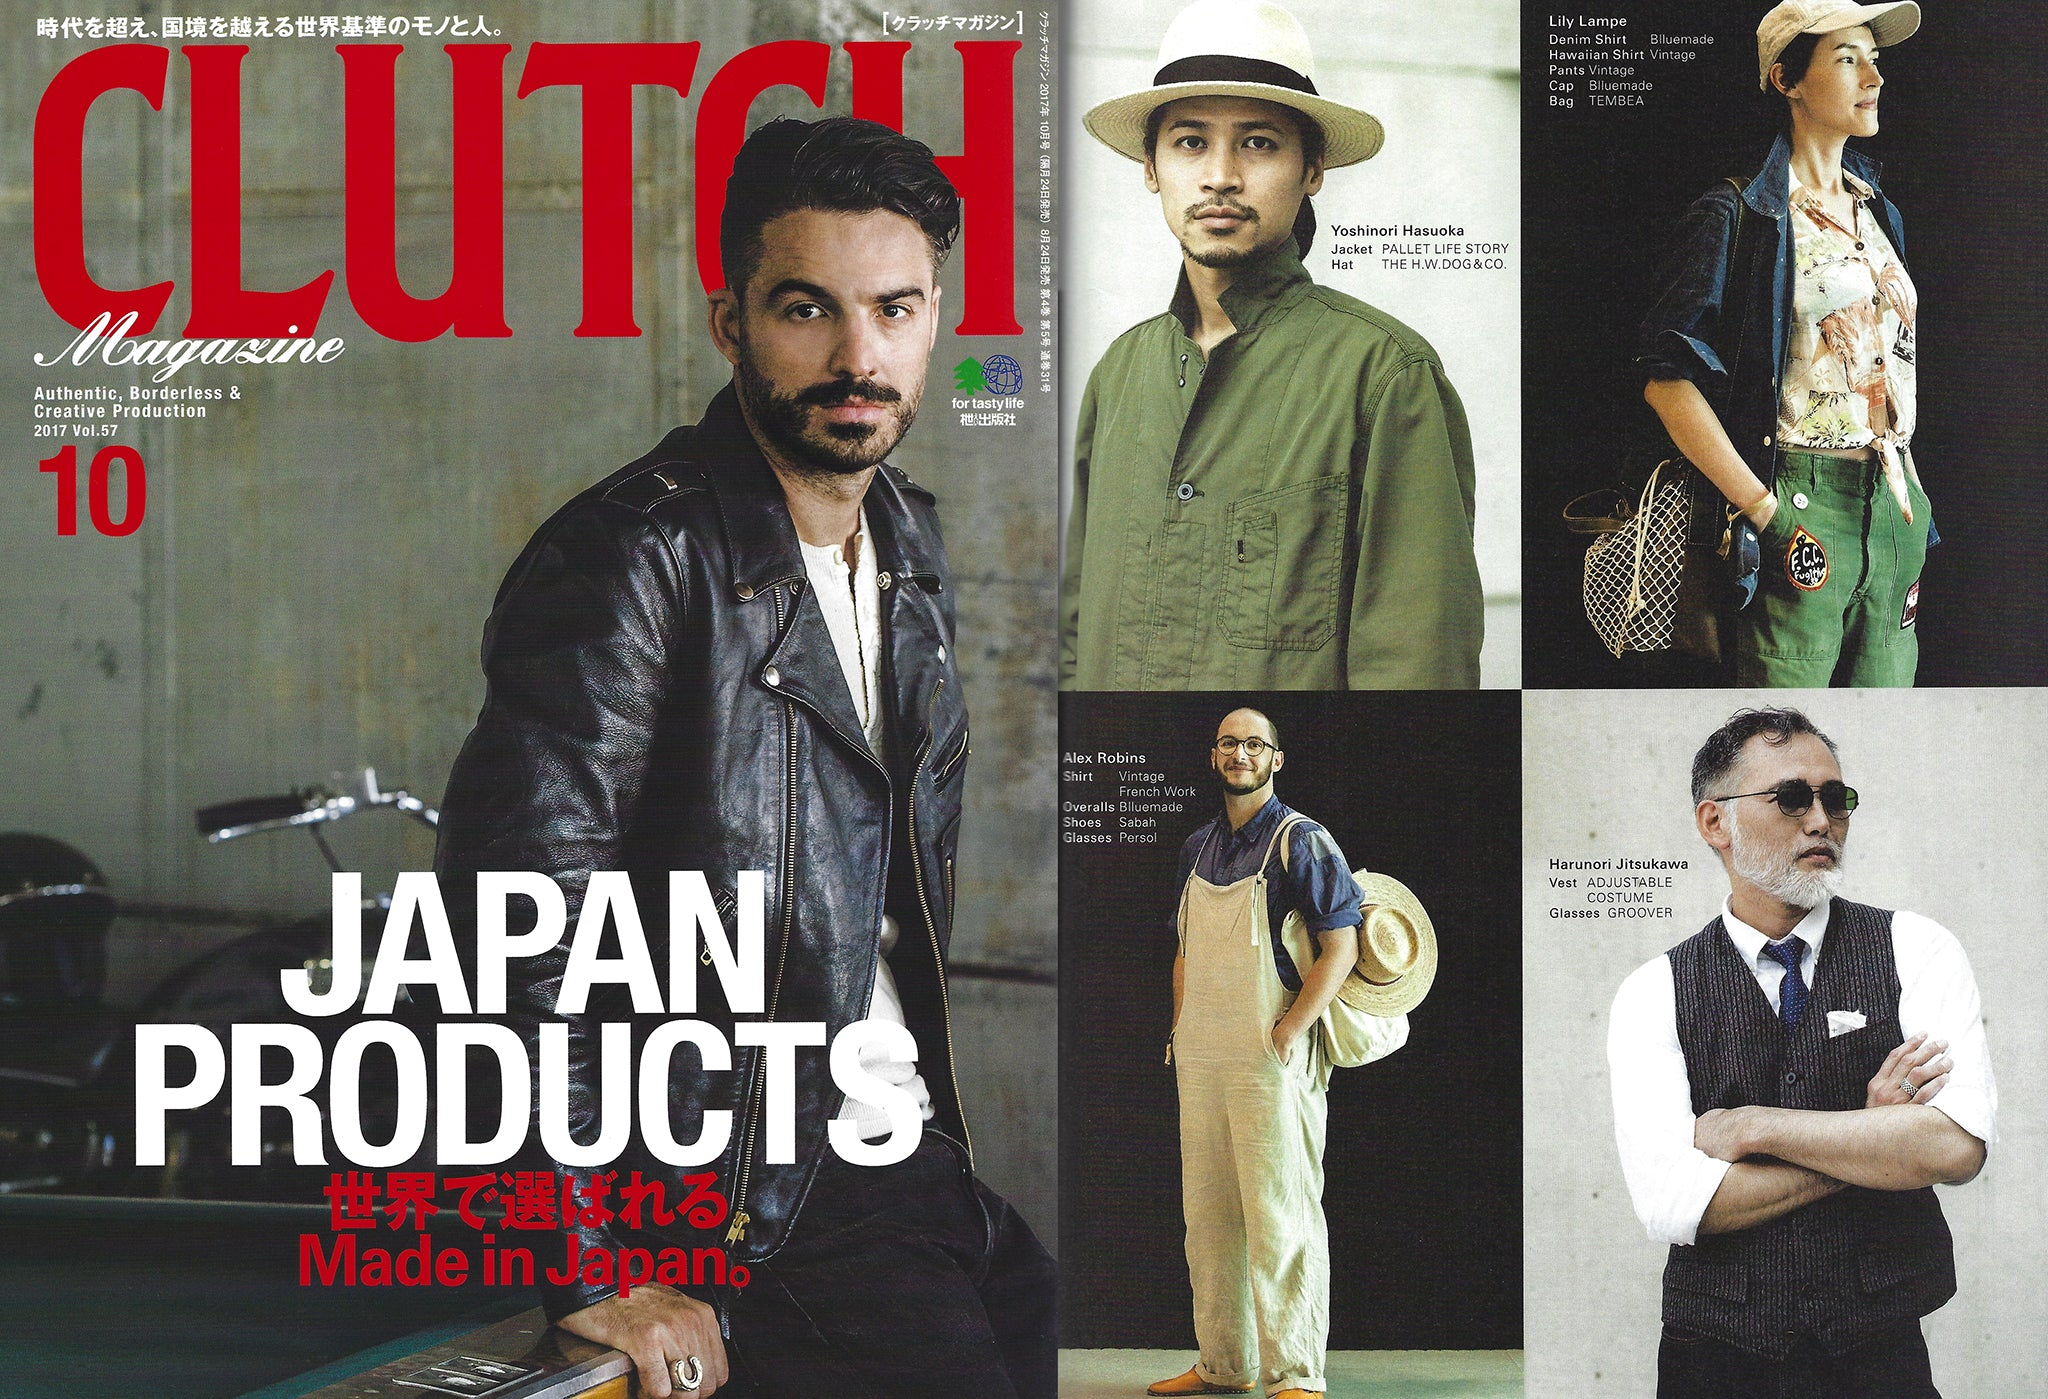 Clutch Magazine Japan Blluemade Press